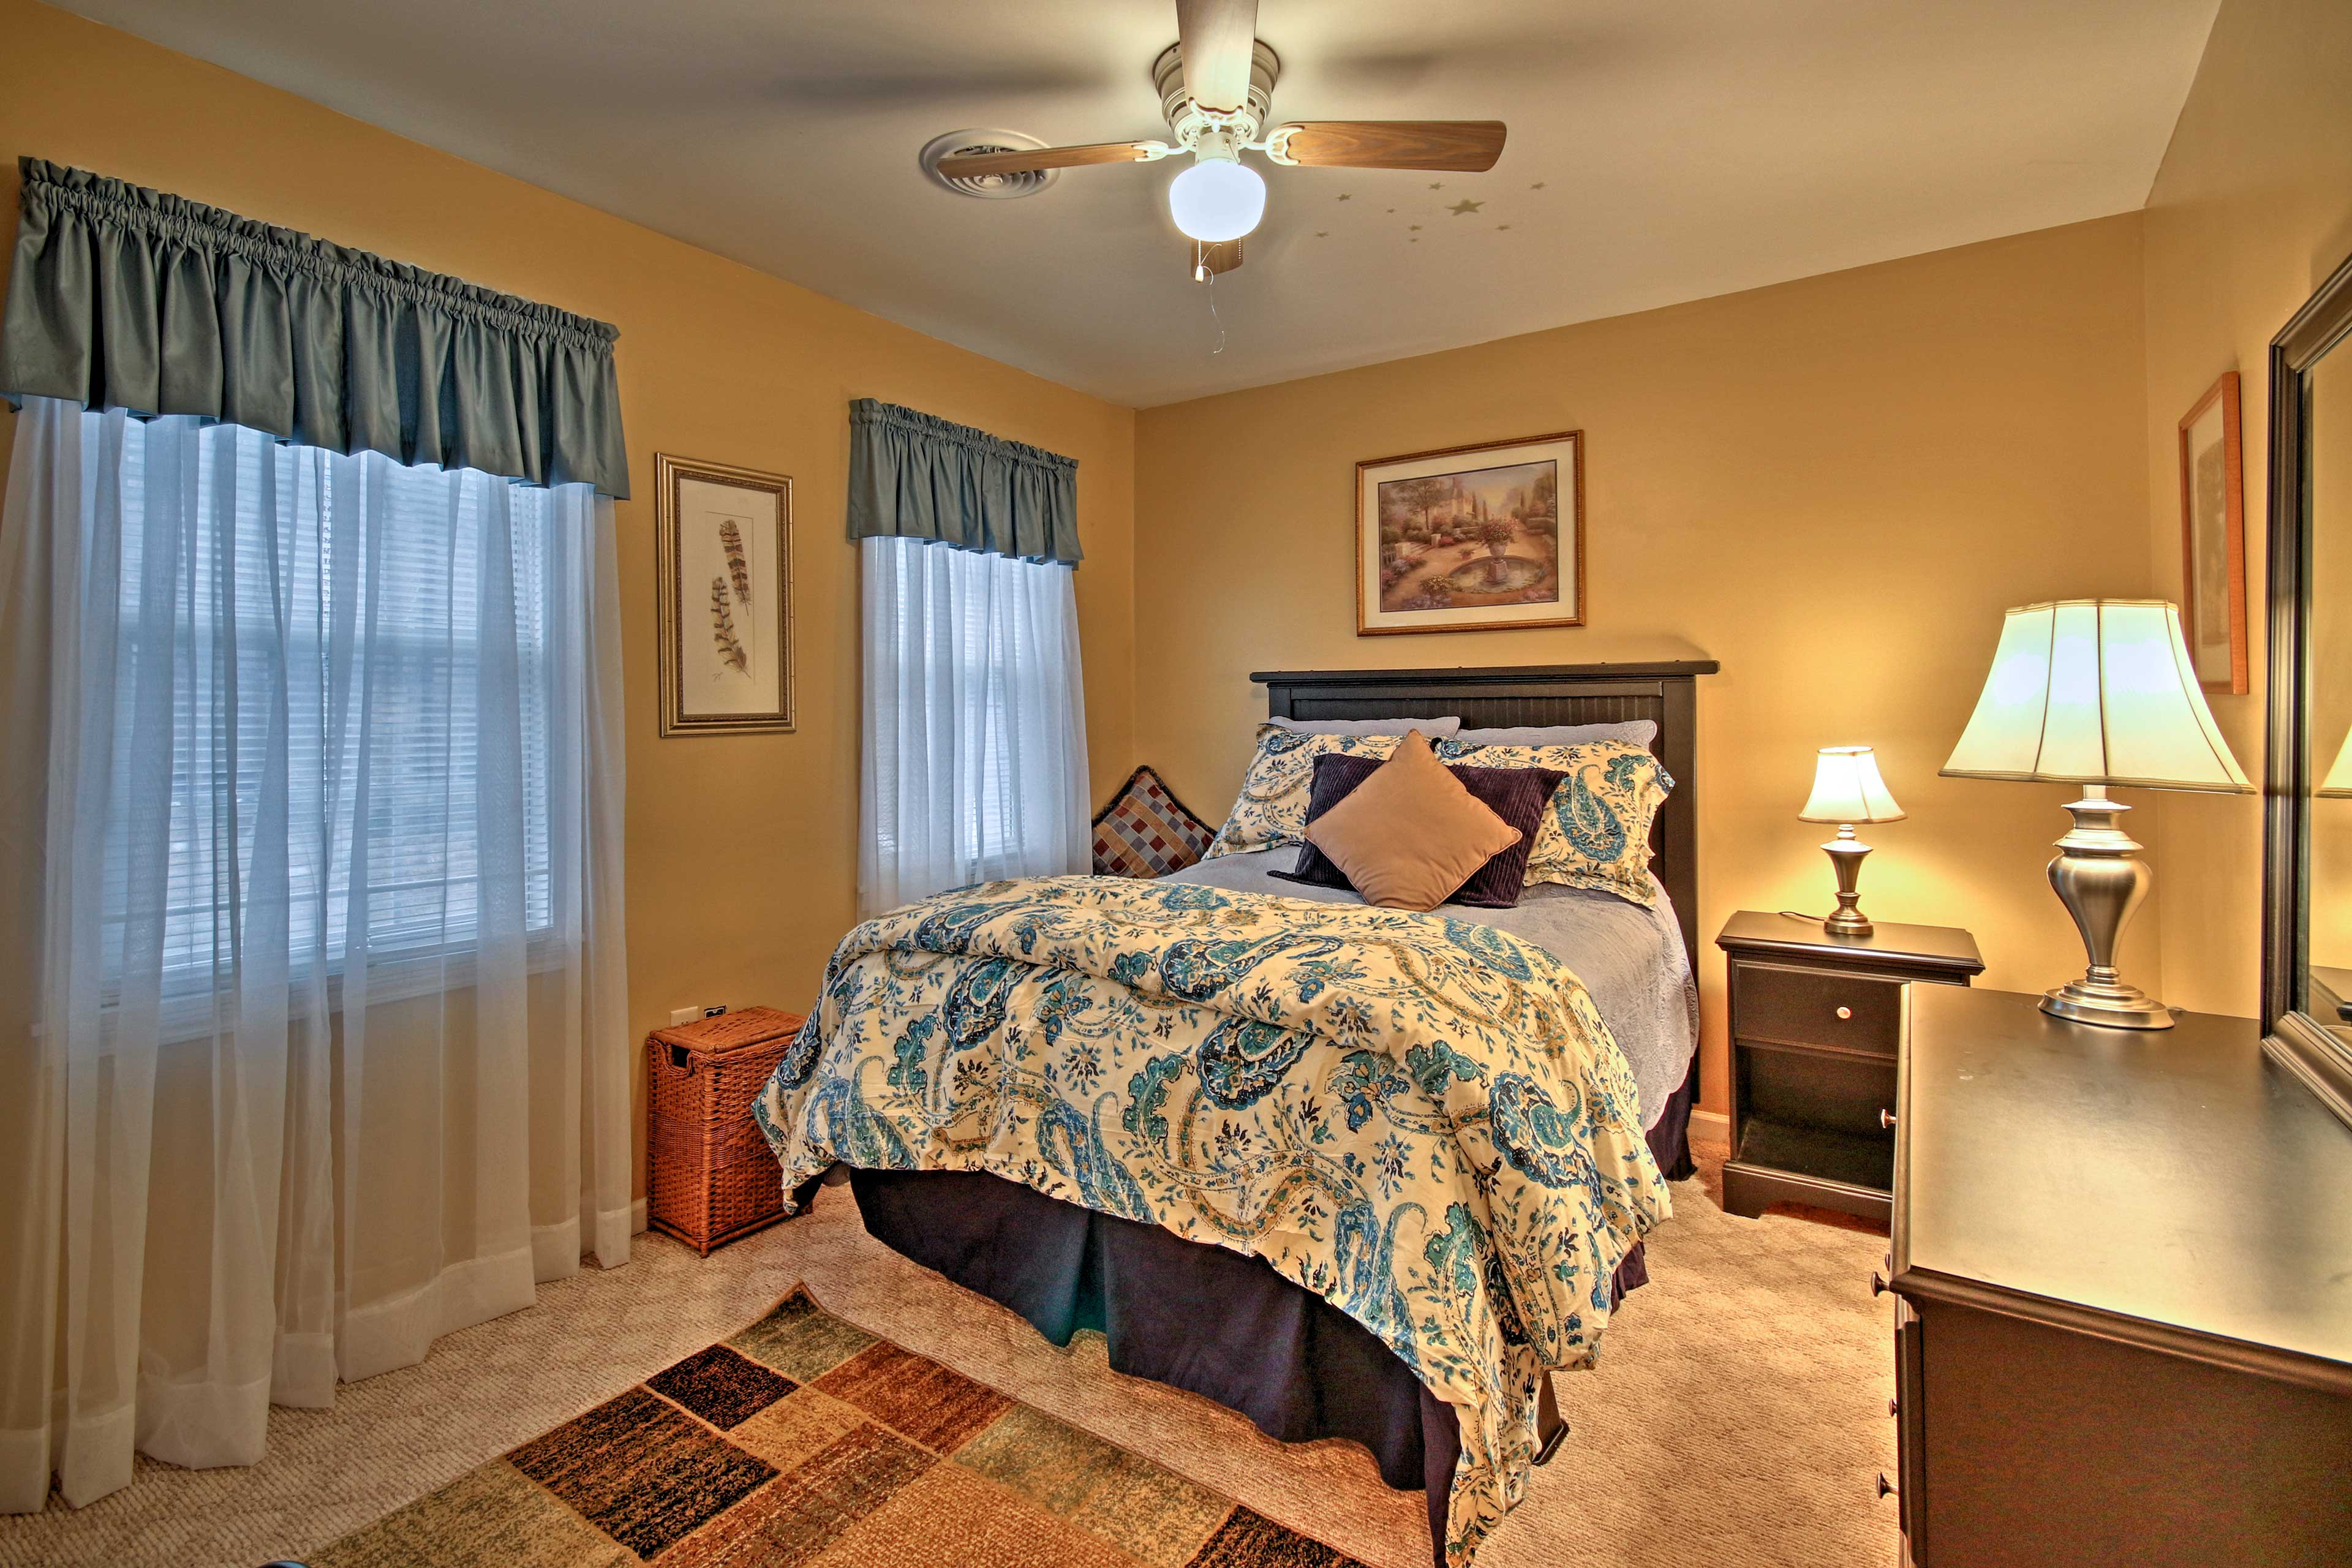 Sleep is sure to come easy in this last bedroom's full bed.